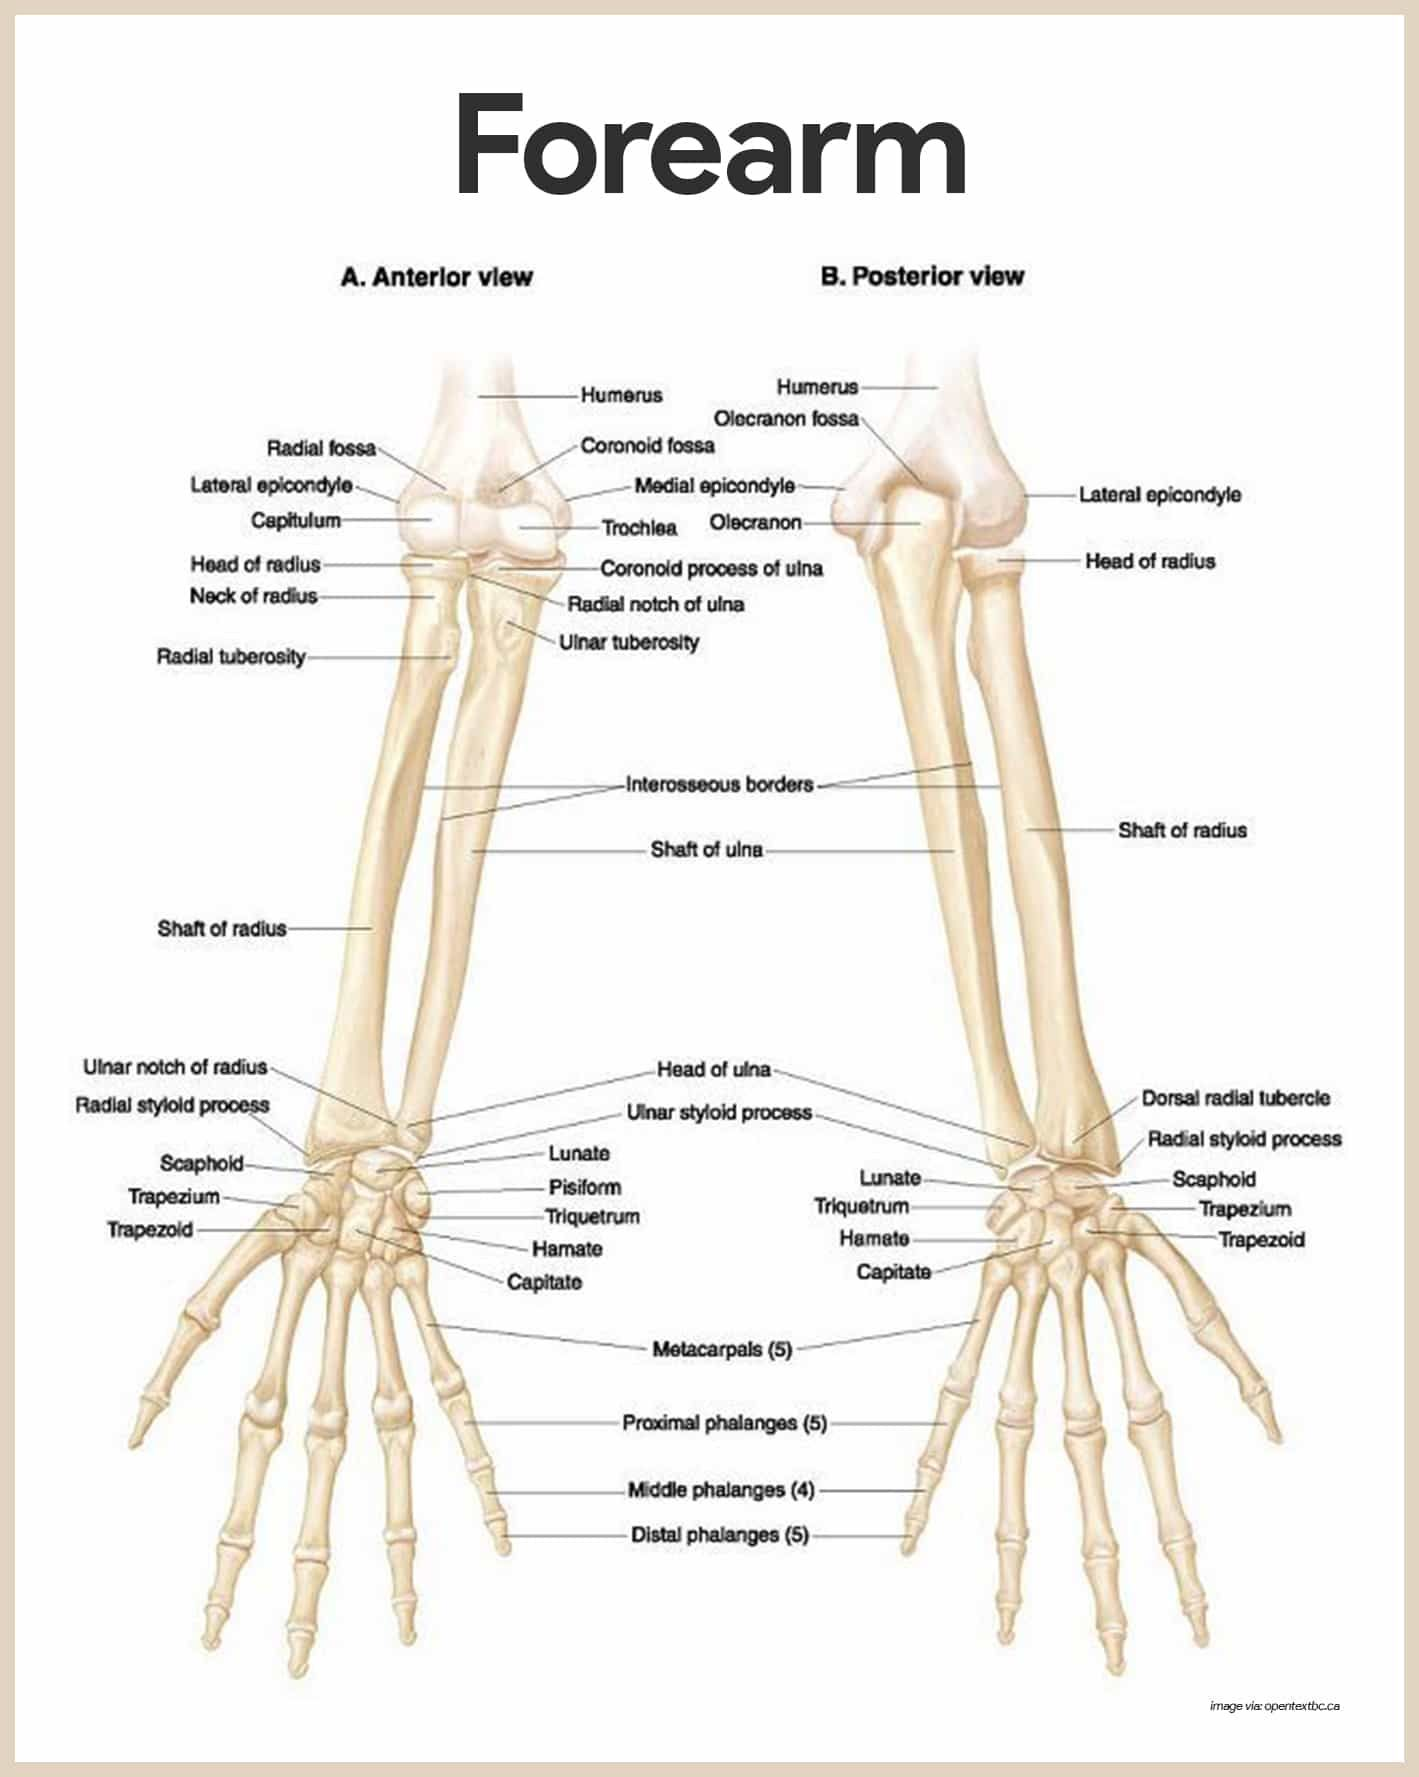 Anatomy Physiology Shs 310 Exam 1 At Arizona State: Skeletal System Anatomy And Physiology